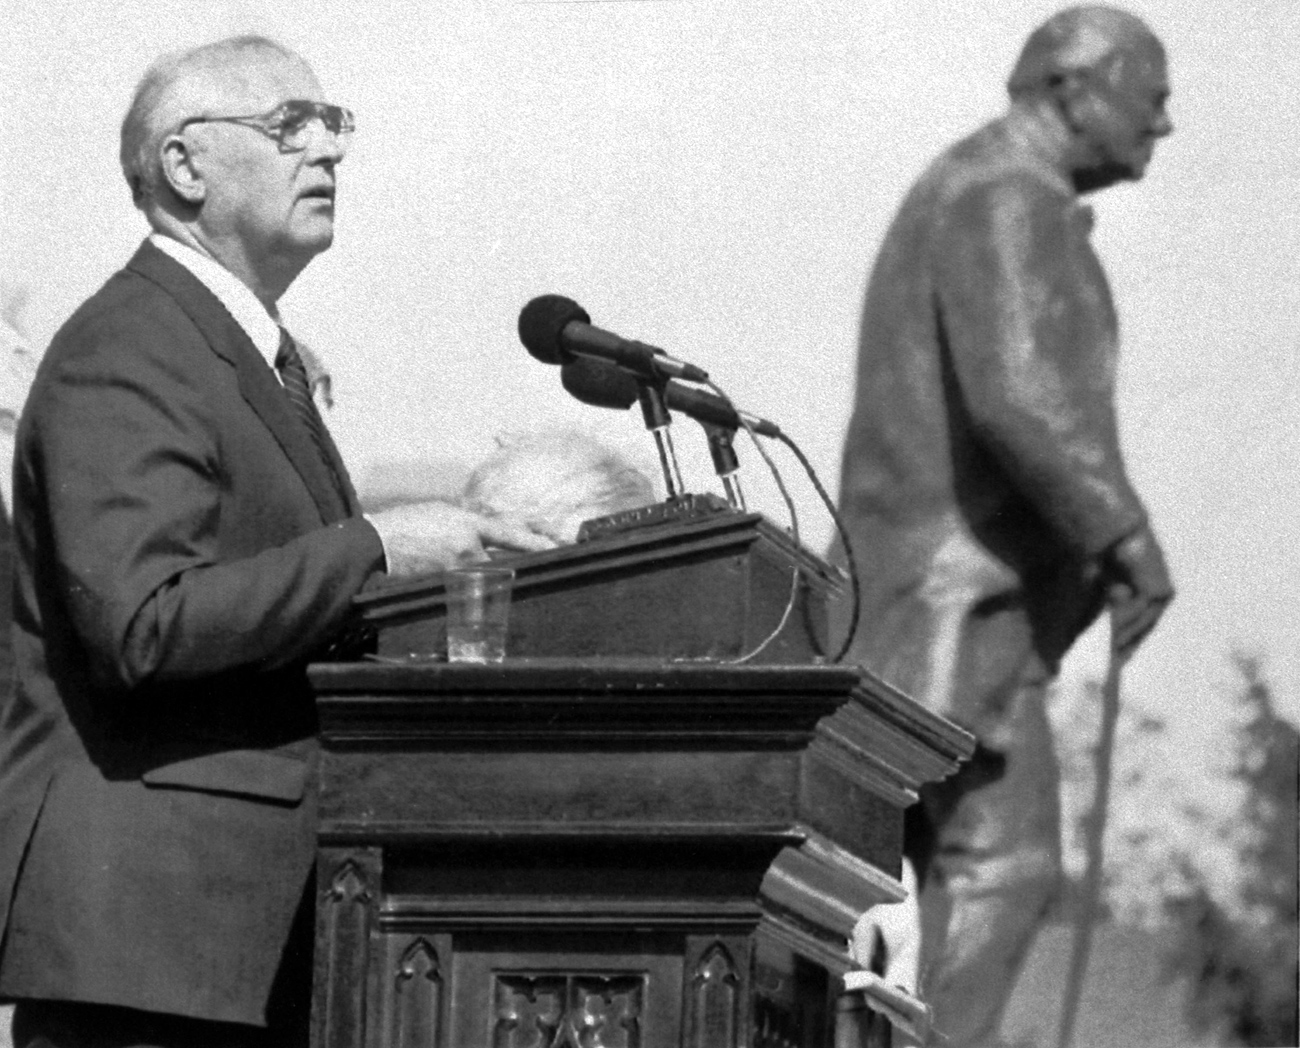 In 1985, Gorbachev came to power and announced wide-ranging reforms that included a provision for the improvement of relations with capitalist countries. Source: AP